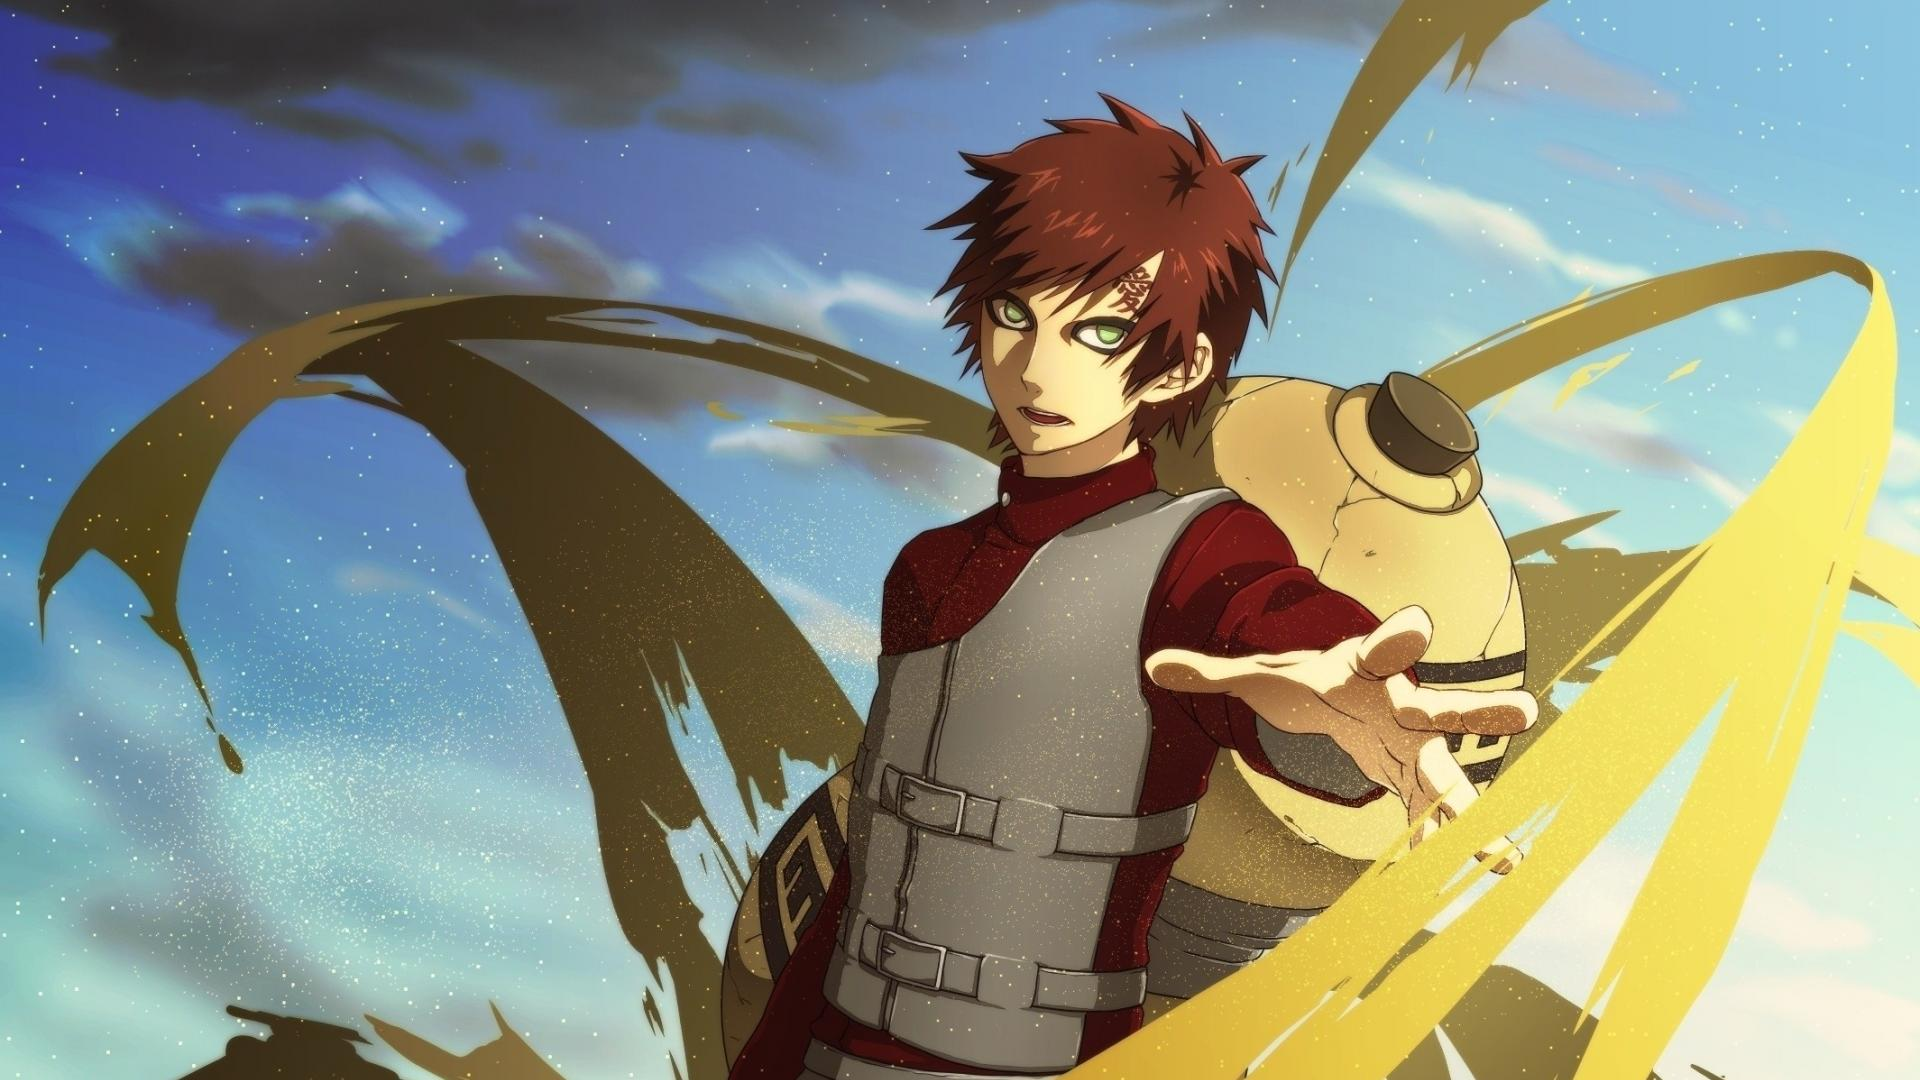 Gaara Wallpaper 1920x1080 - WallpaperSafari